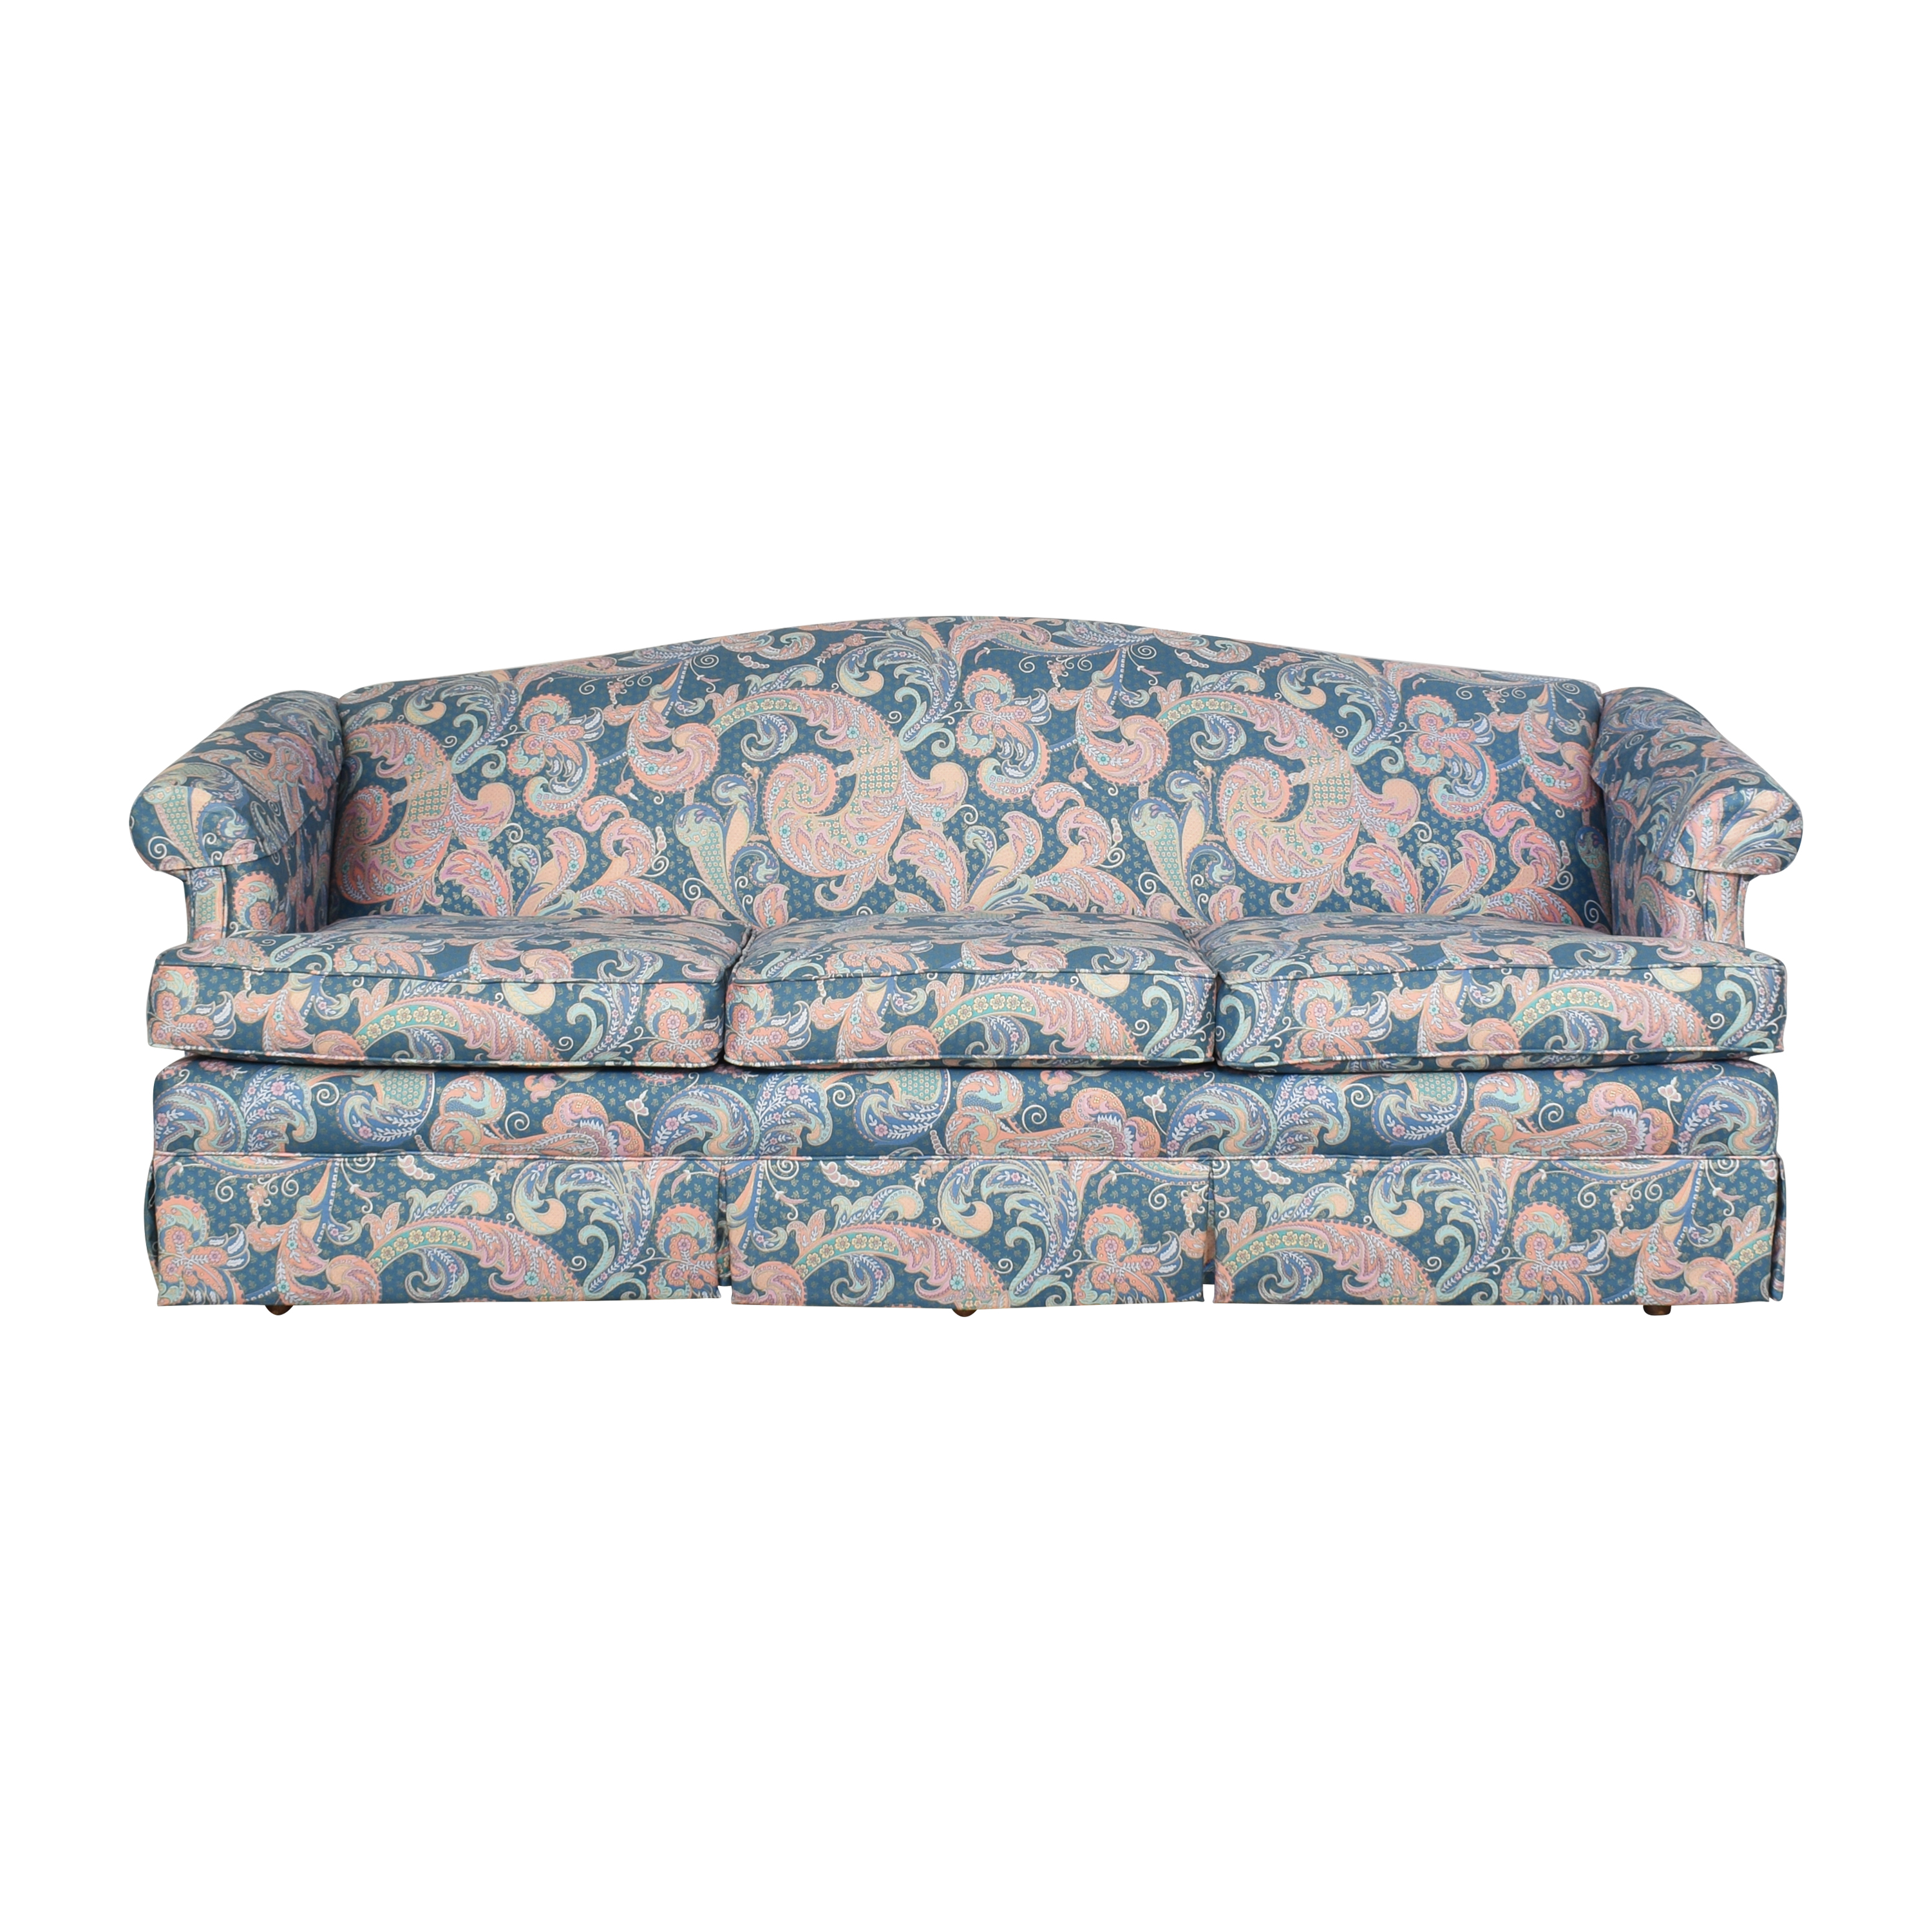 shop Choice Seating Gallery Skirted Three Cushion Sofa Choice Seating Gallery Sofas